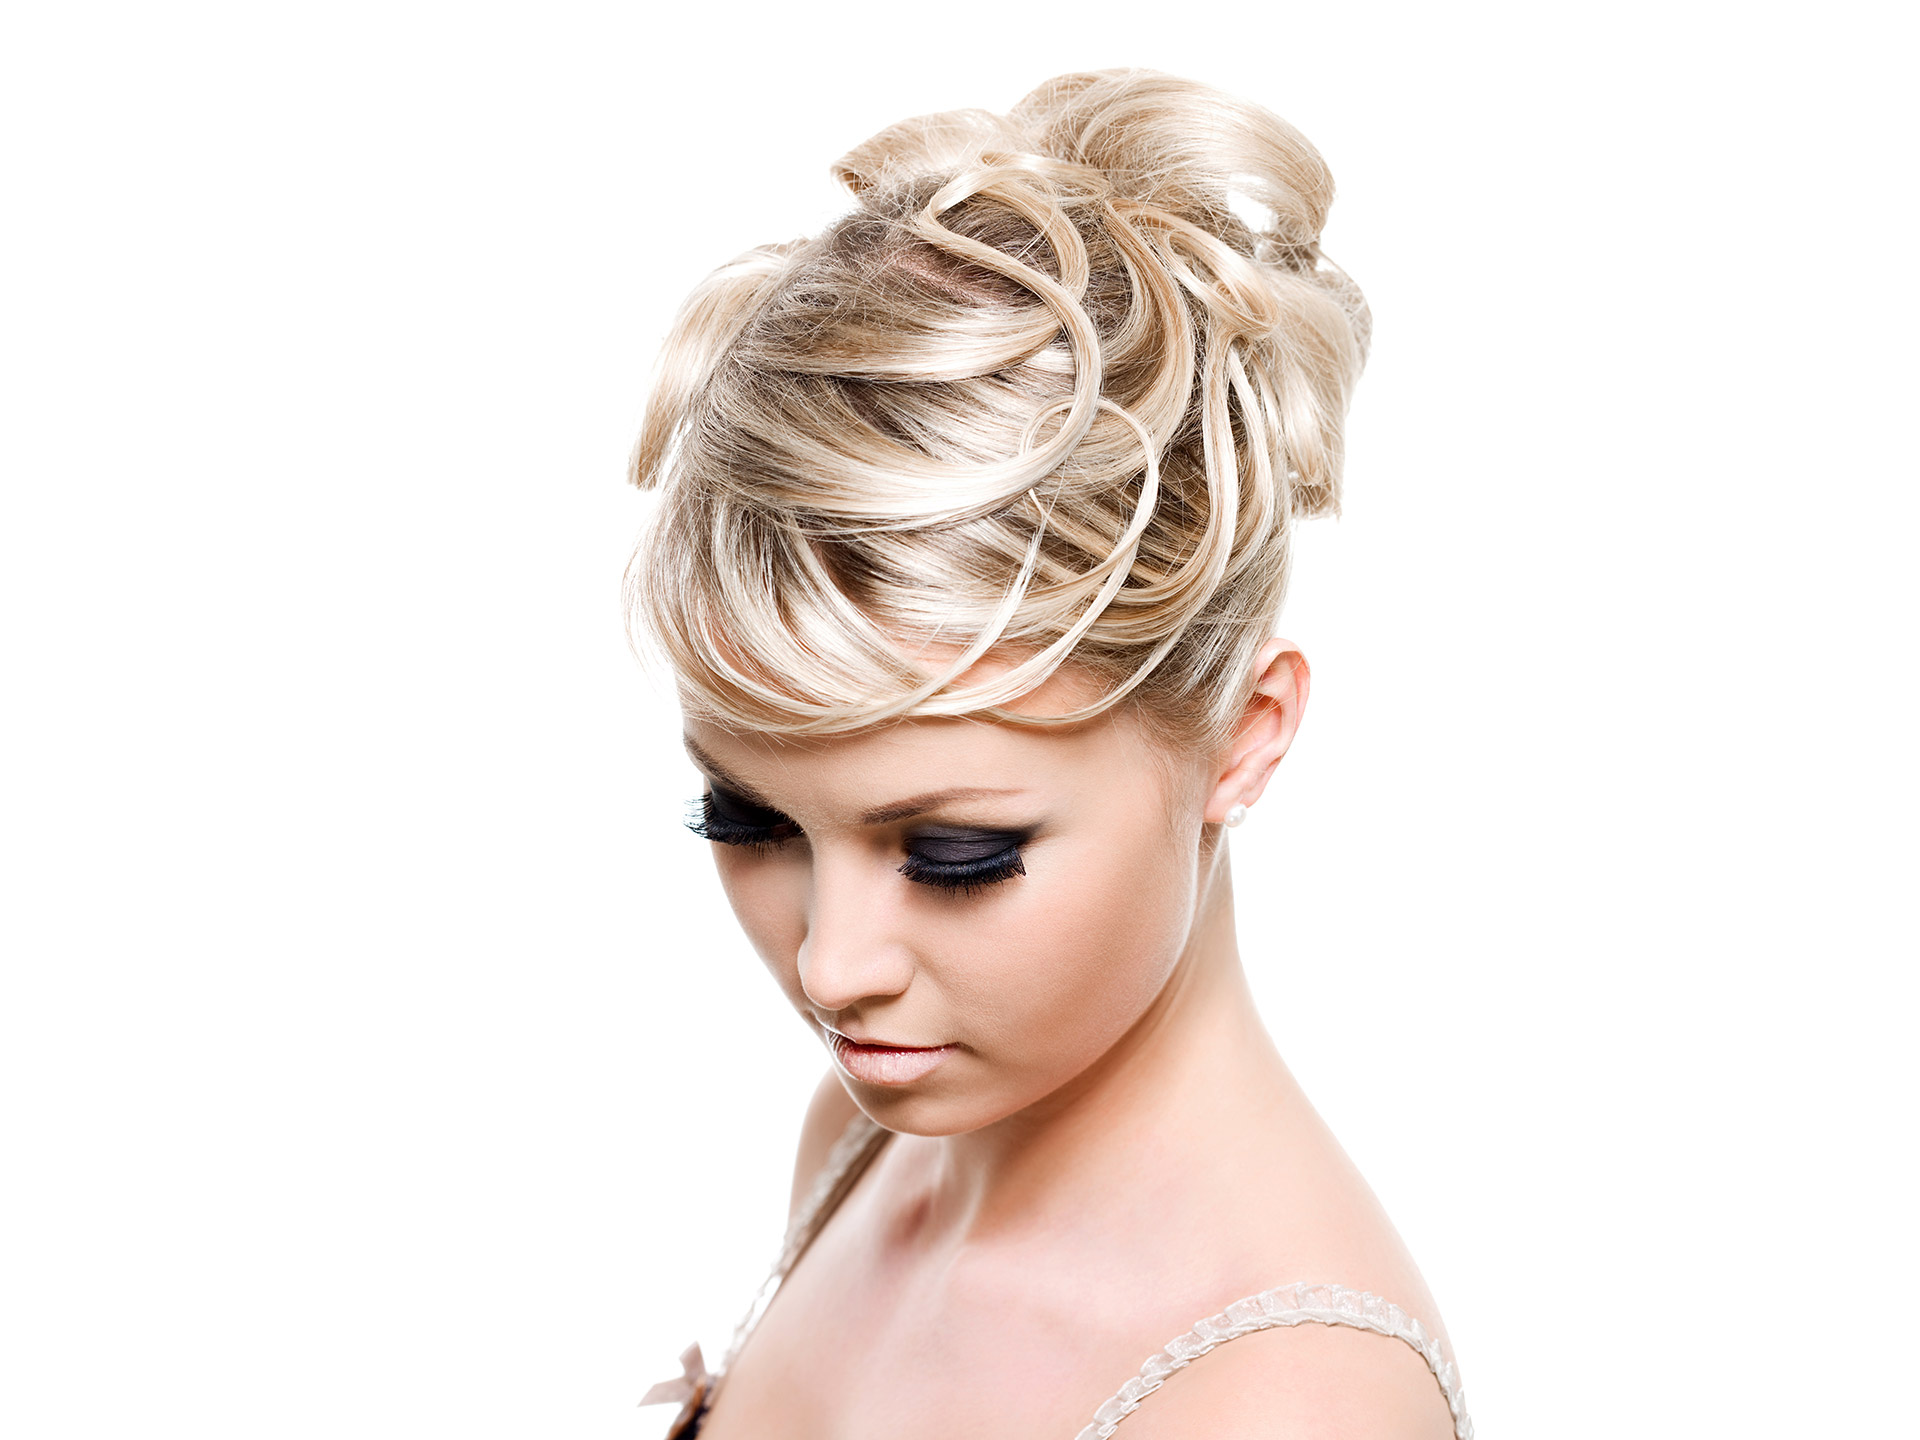 coiffure chignon comment y parvenir sans prise de t te. Black Bedroom Furniture Sets. Home Design Ideas